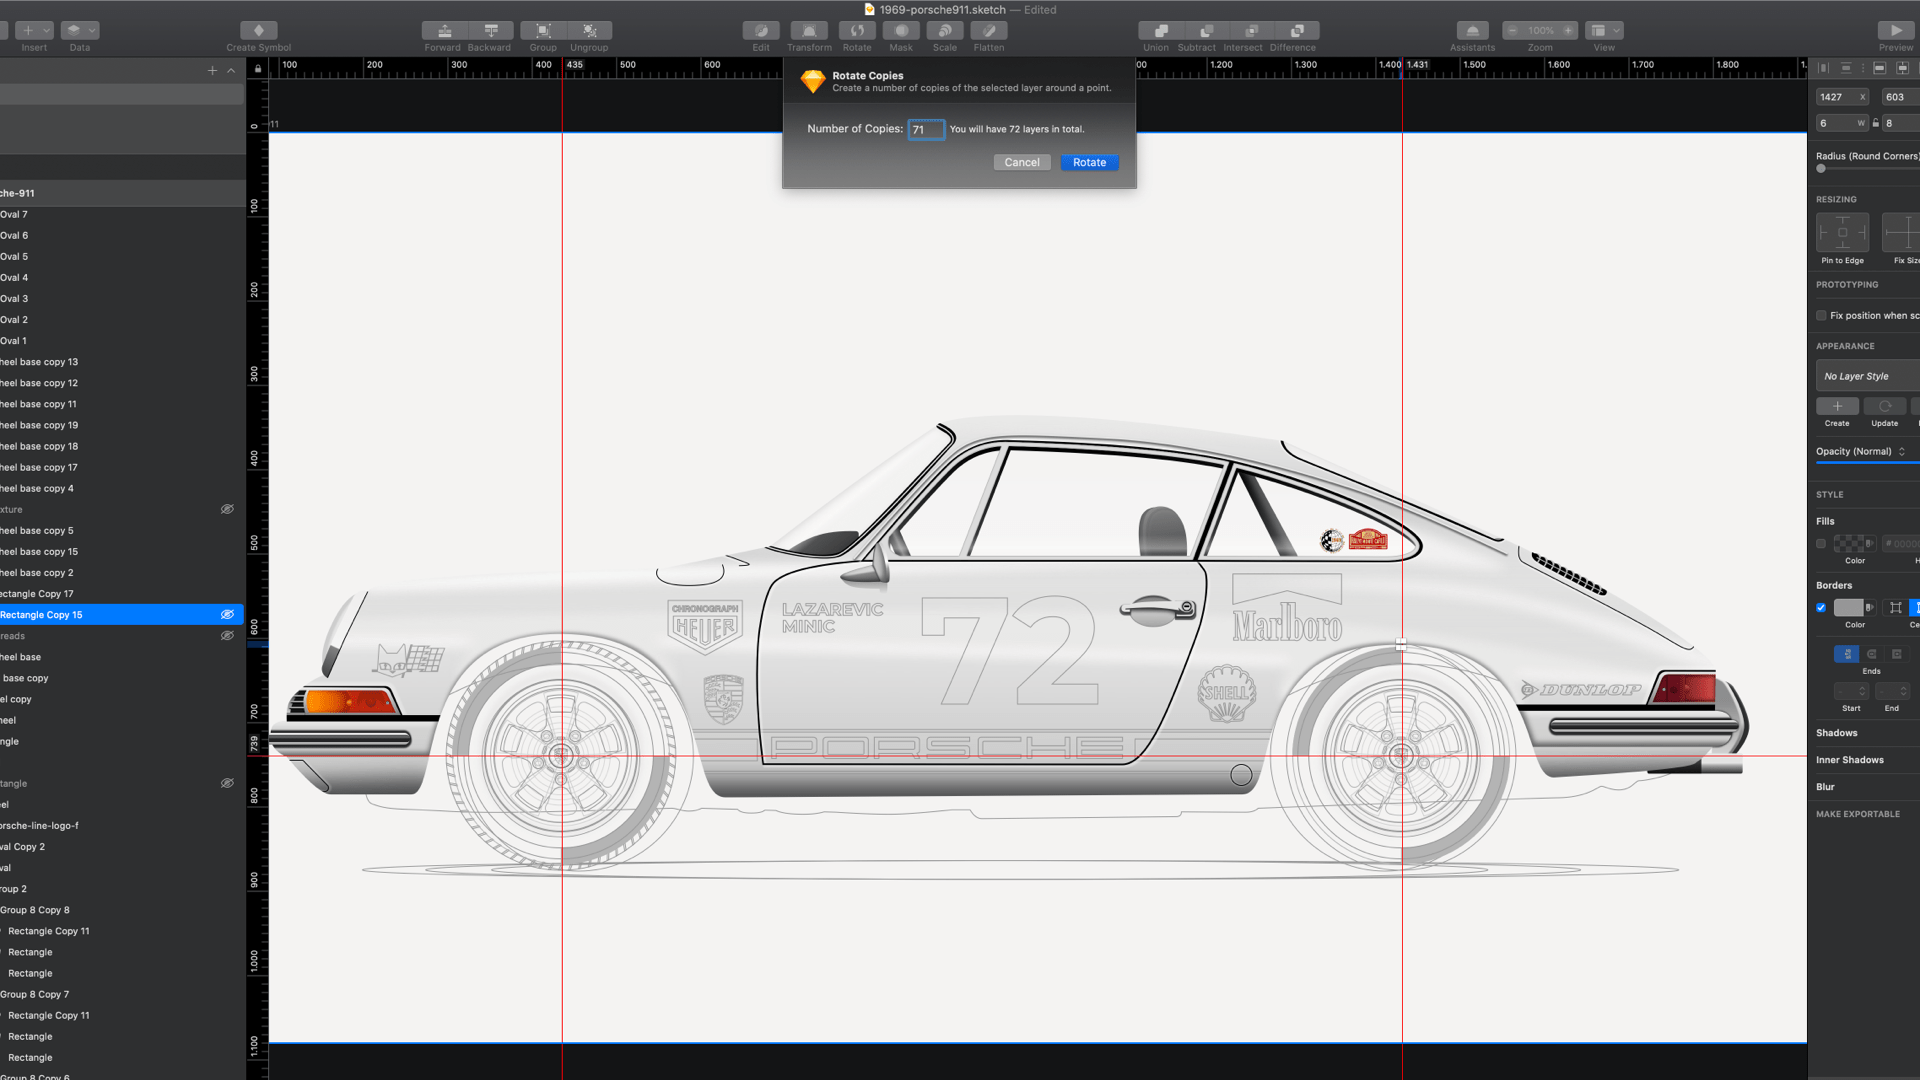 A screenshot of a Sketch document with a half-finished illustration of a photorealistic car.